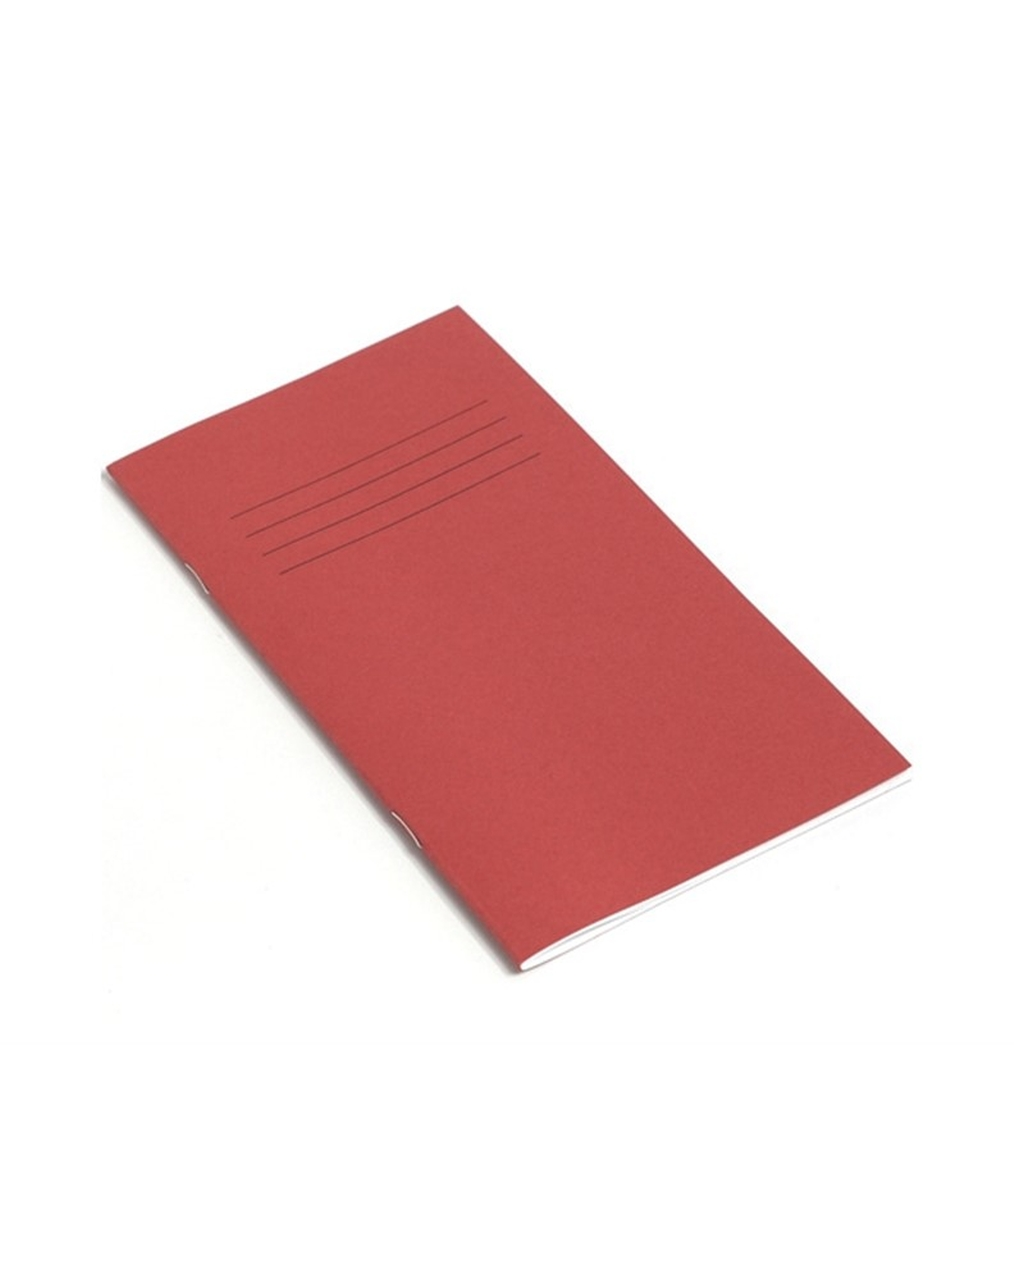 Exercise Book 8 x 4 (203 x 102mm) Red Cover 12mm Ruled 32 Pages